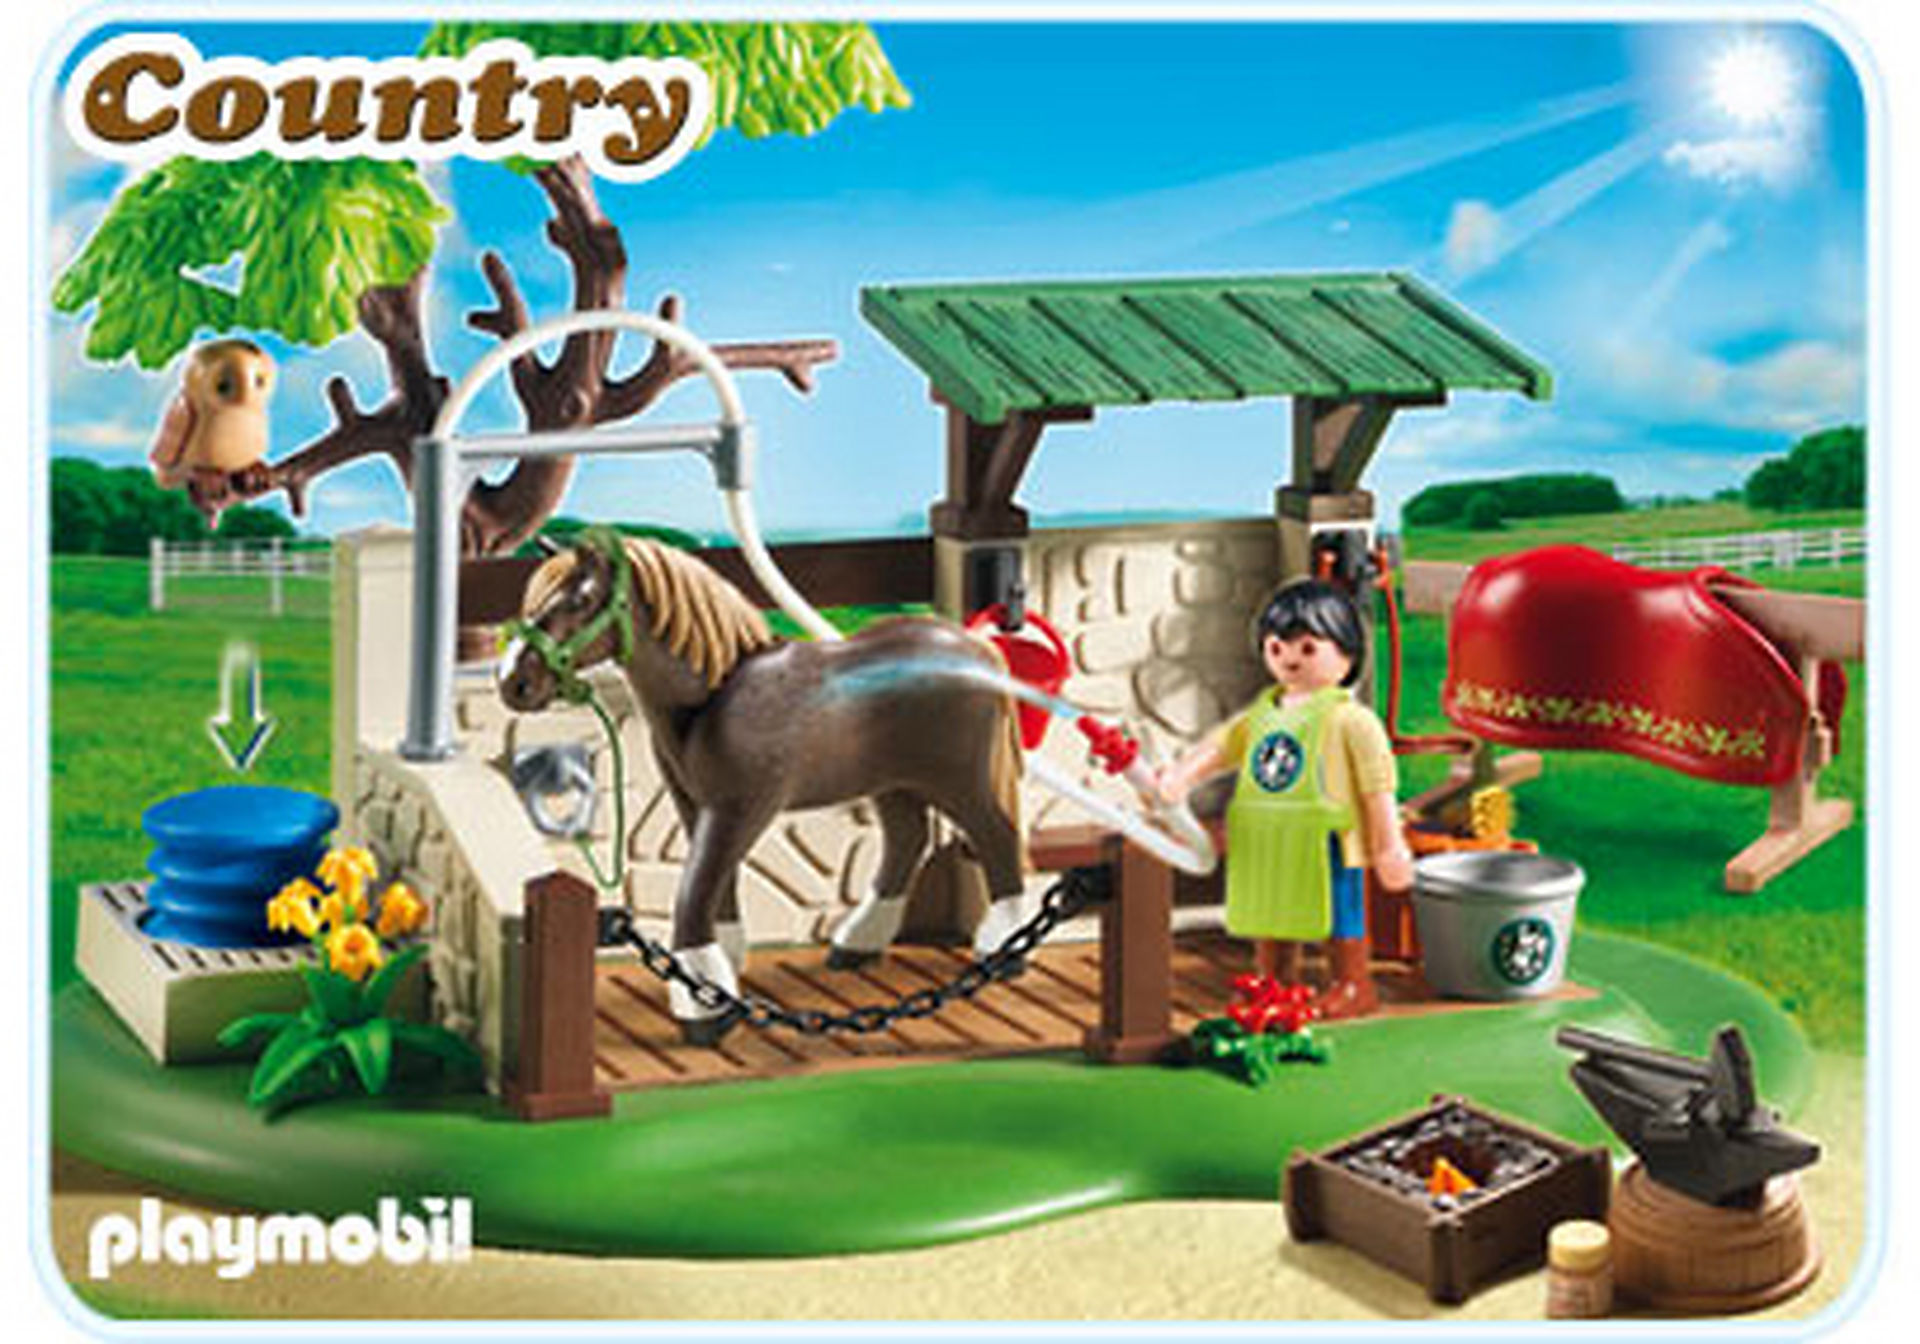 http://media.playmobil.com/i/playmobil/5225-A_product_detail/Pferdepflegestation